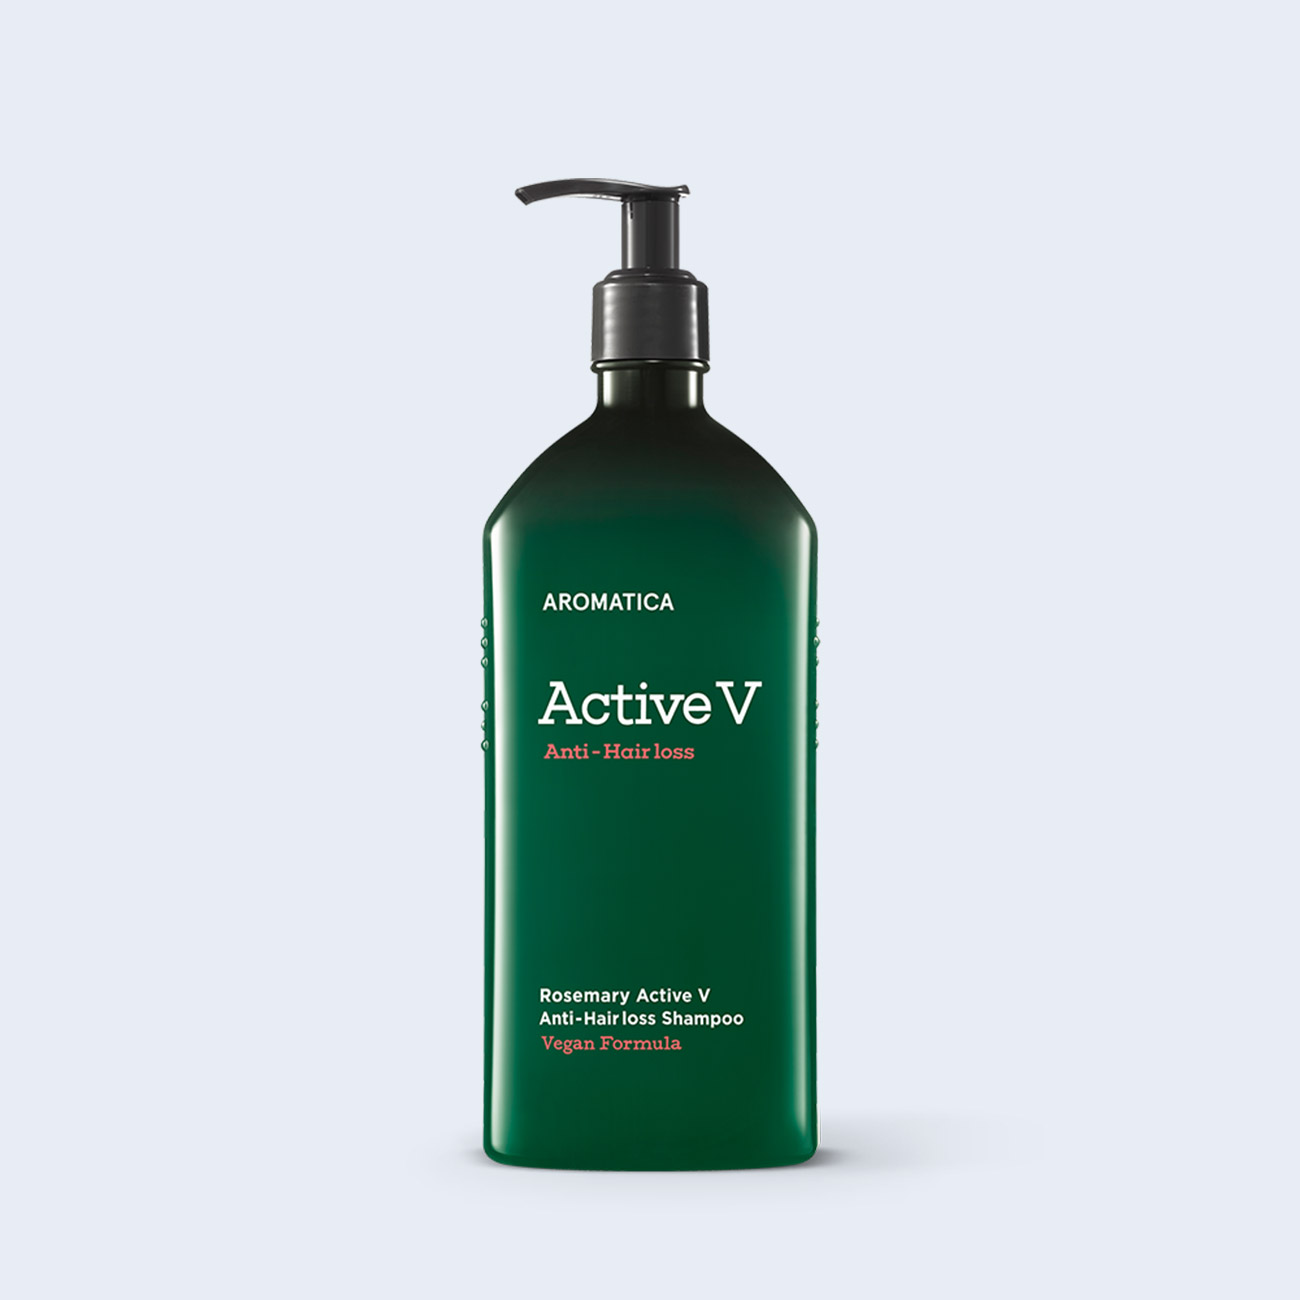 Rosemary Active V Anti-Hair Loss Shampoo 400ml